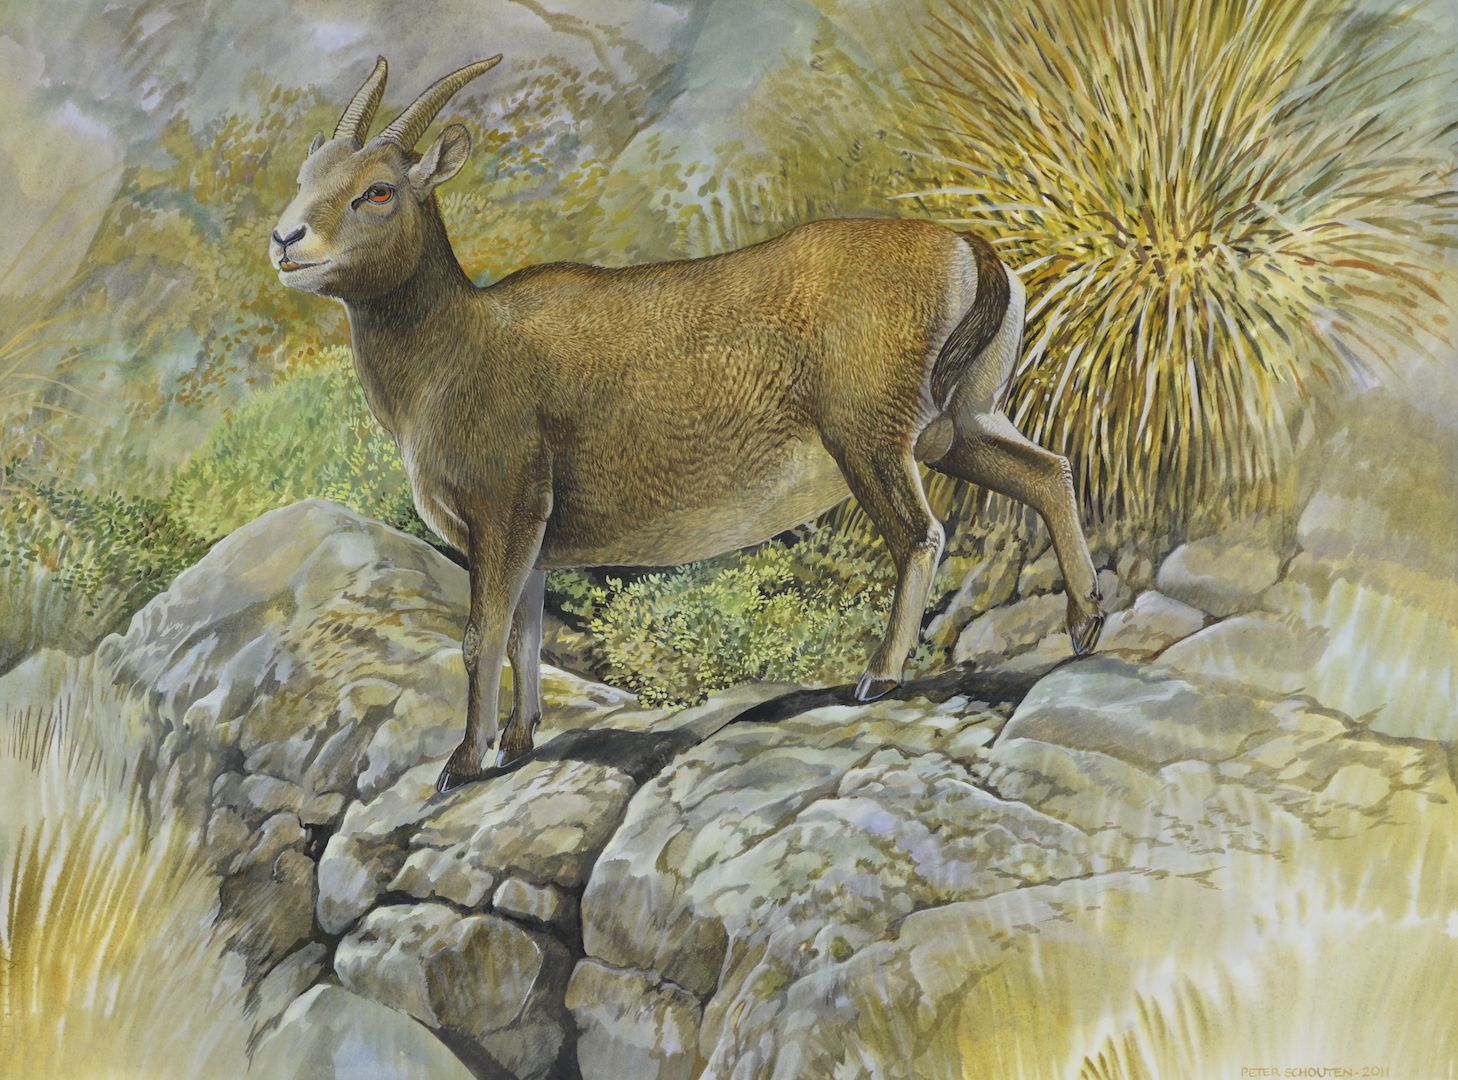 Name Balearic Goat Species Myotragus Balearicus Location Balearic Islands Size Of Artwork 460 X 620 W Wildlife Artists Prehistoric Animals Animals Artwork